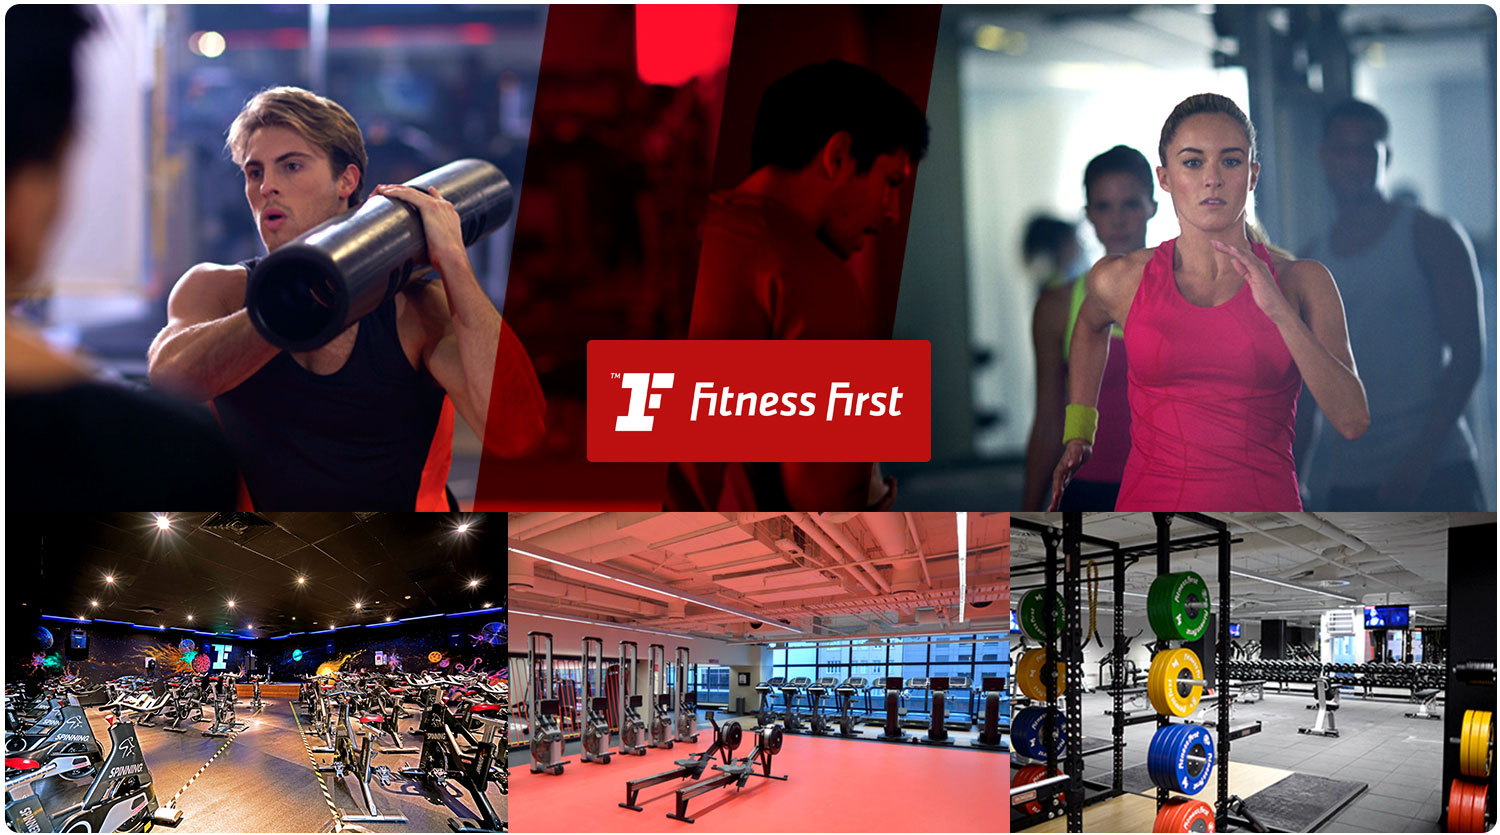 Start your Fitness Journey with Fitness First with only $9.95 for 1 week at Fitness First Doncaster. Experience our first class gym and freestyle classes inc. Yoga, Pilates, Zumba, Boxing, HIIT, Les Mills and more. Take the first step with Fitness First Doncaster.